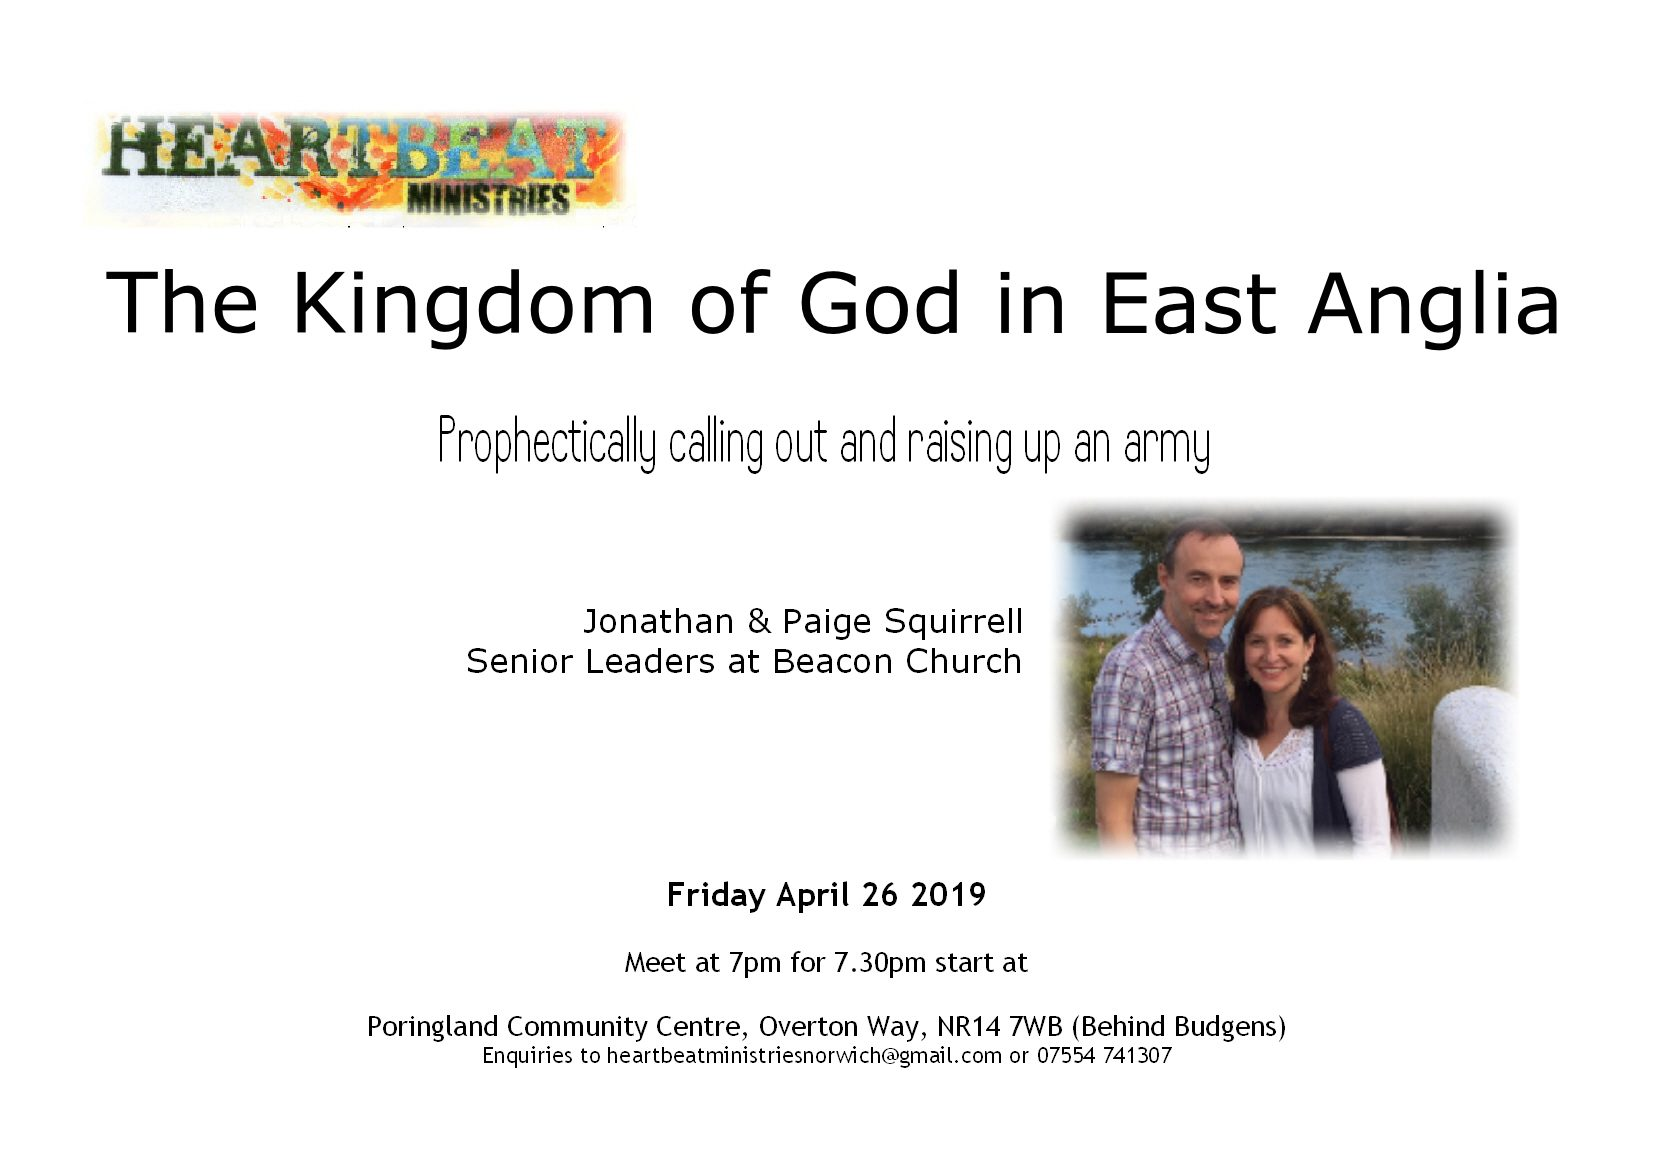 The Kingdom of God in East Anglia